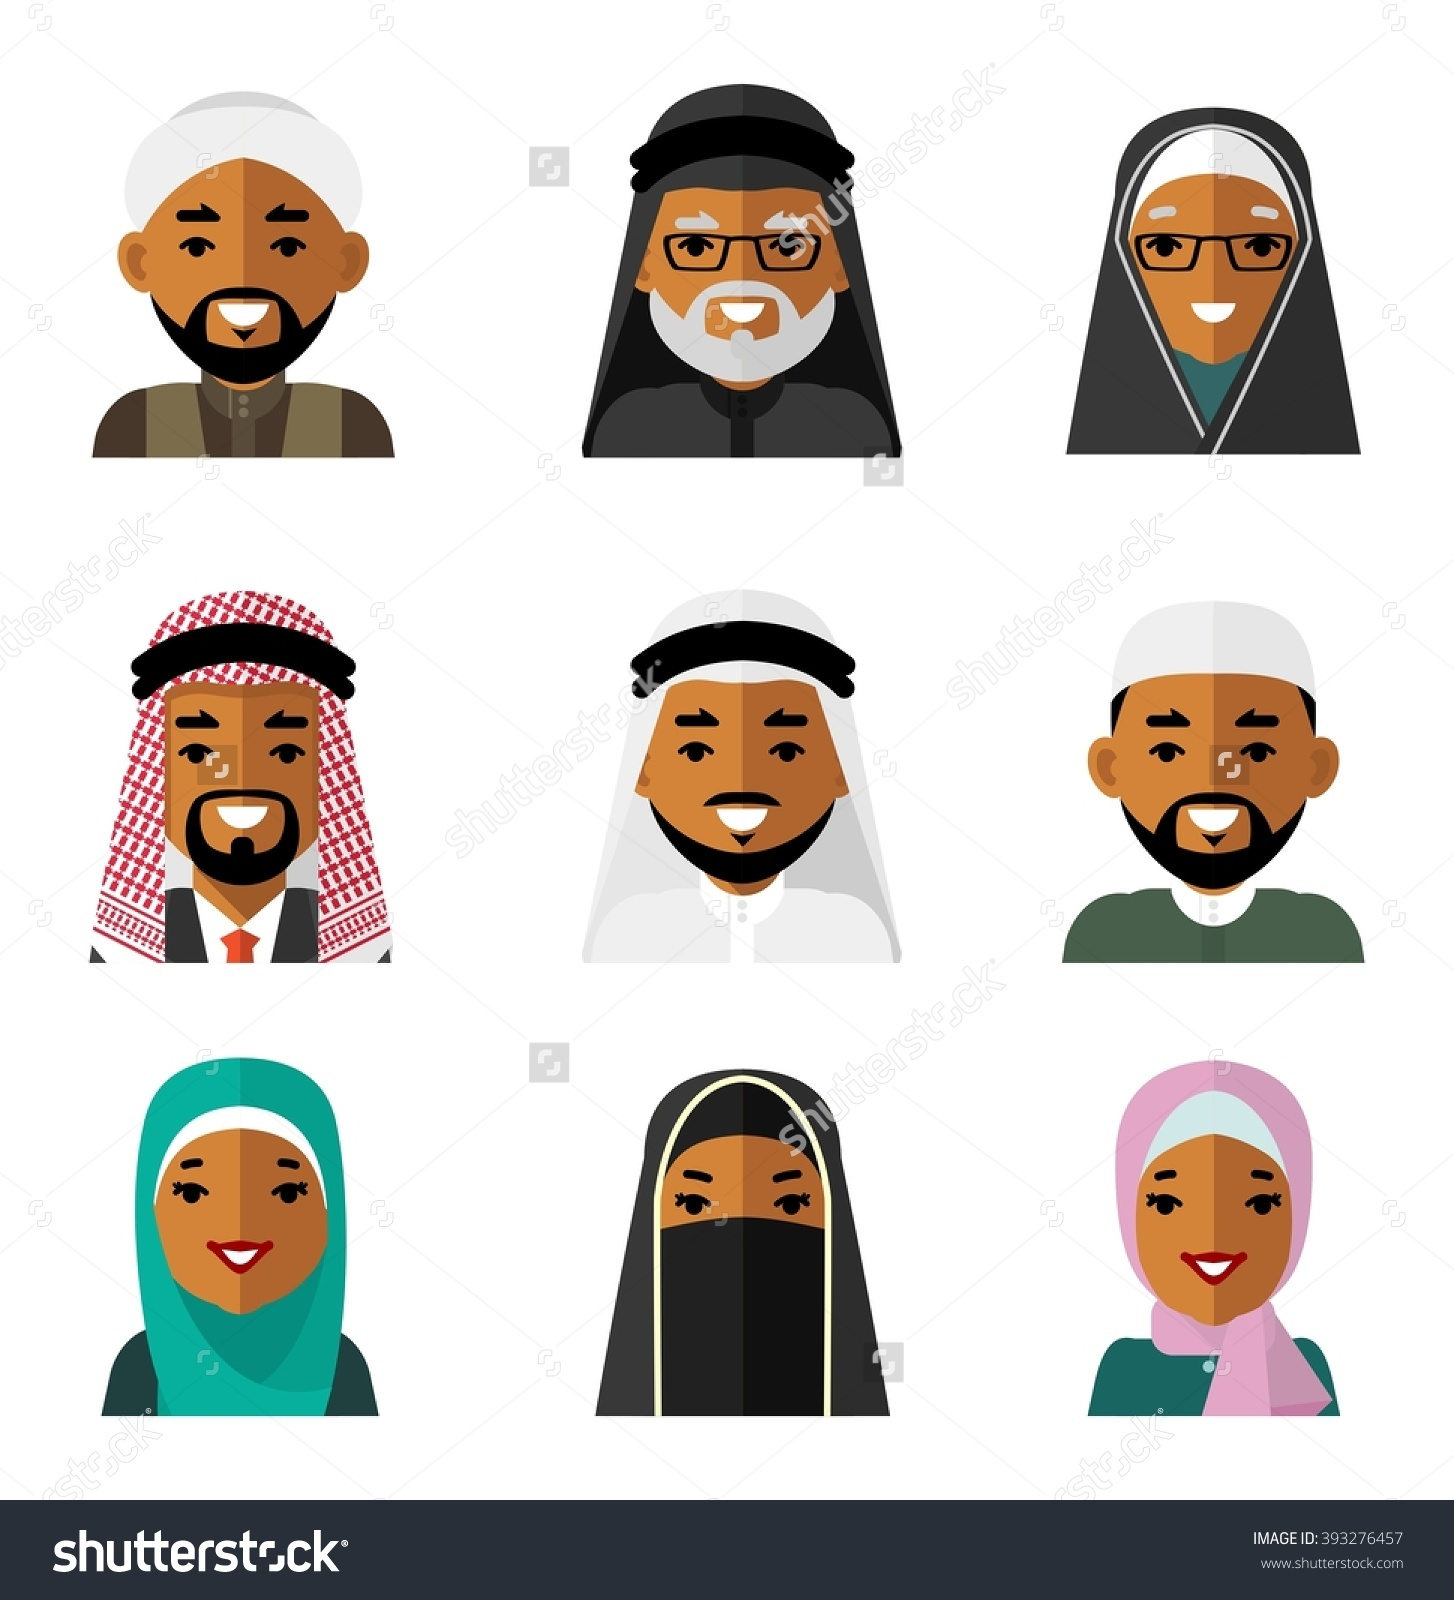 Muslim Arab People Characters Avatars Icons Stock Vector 393276457.